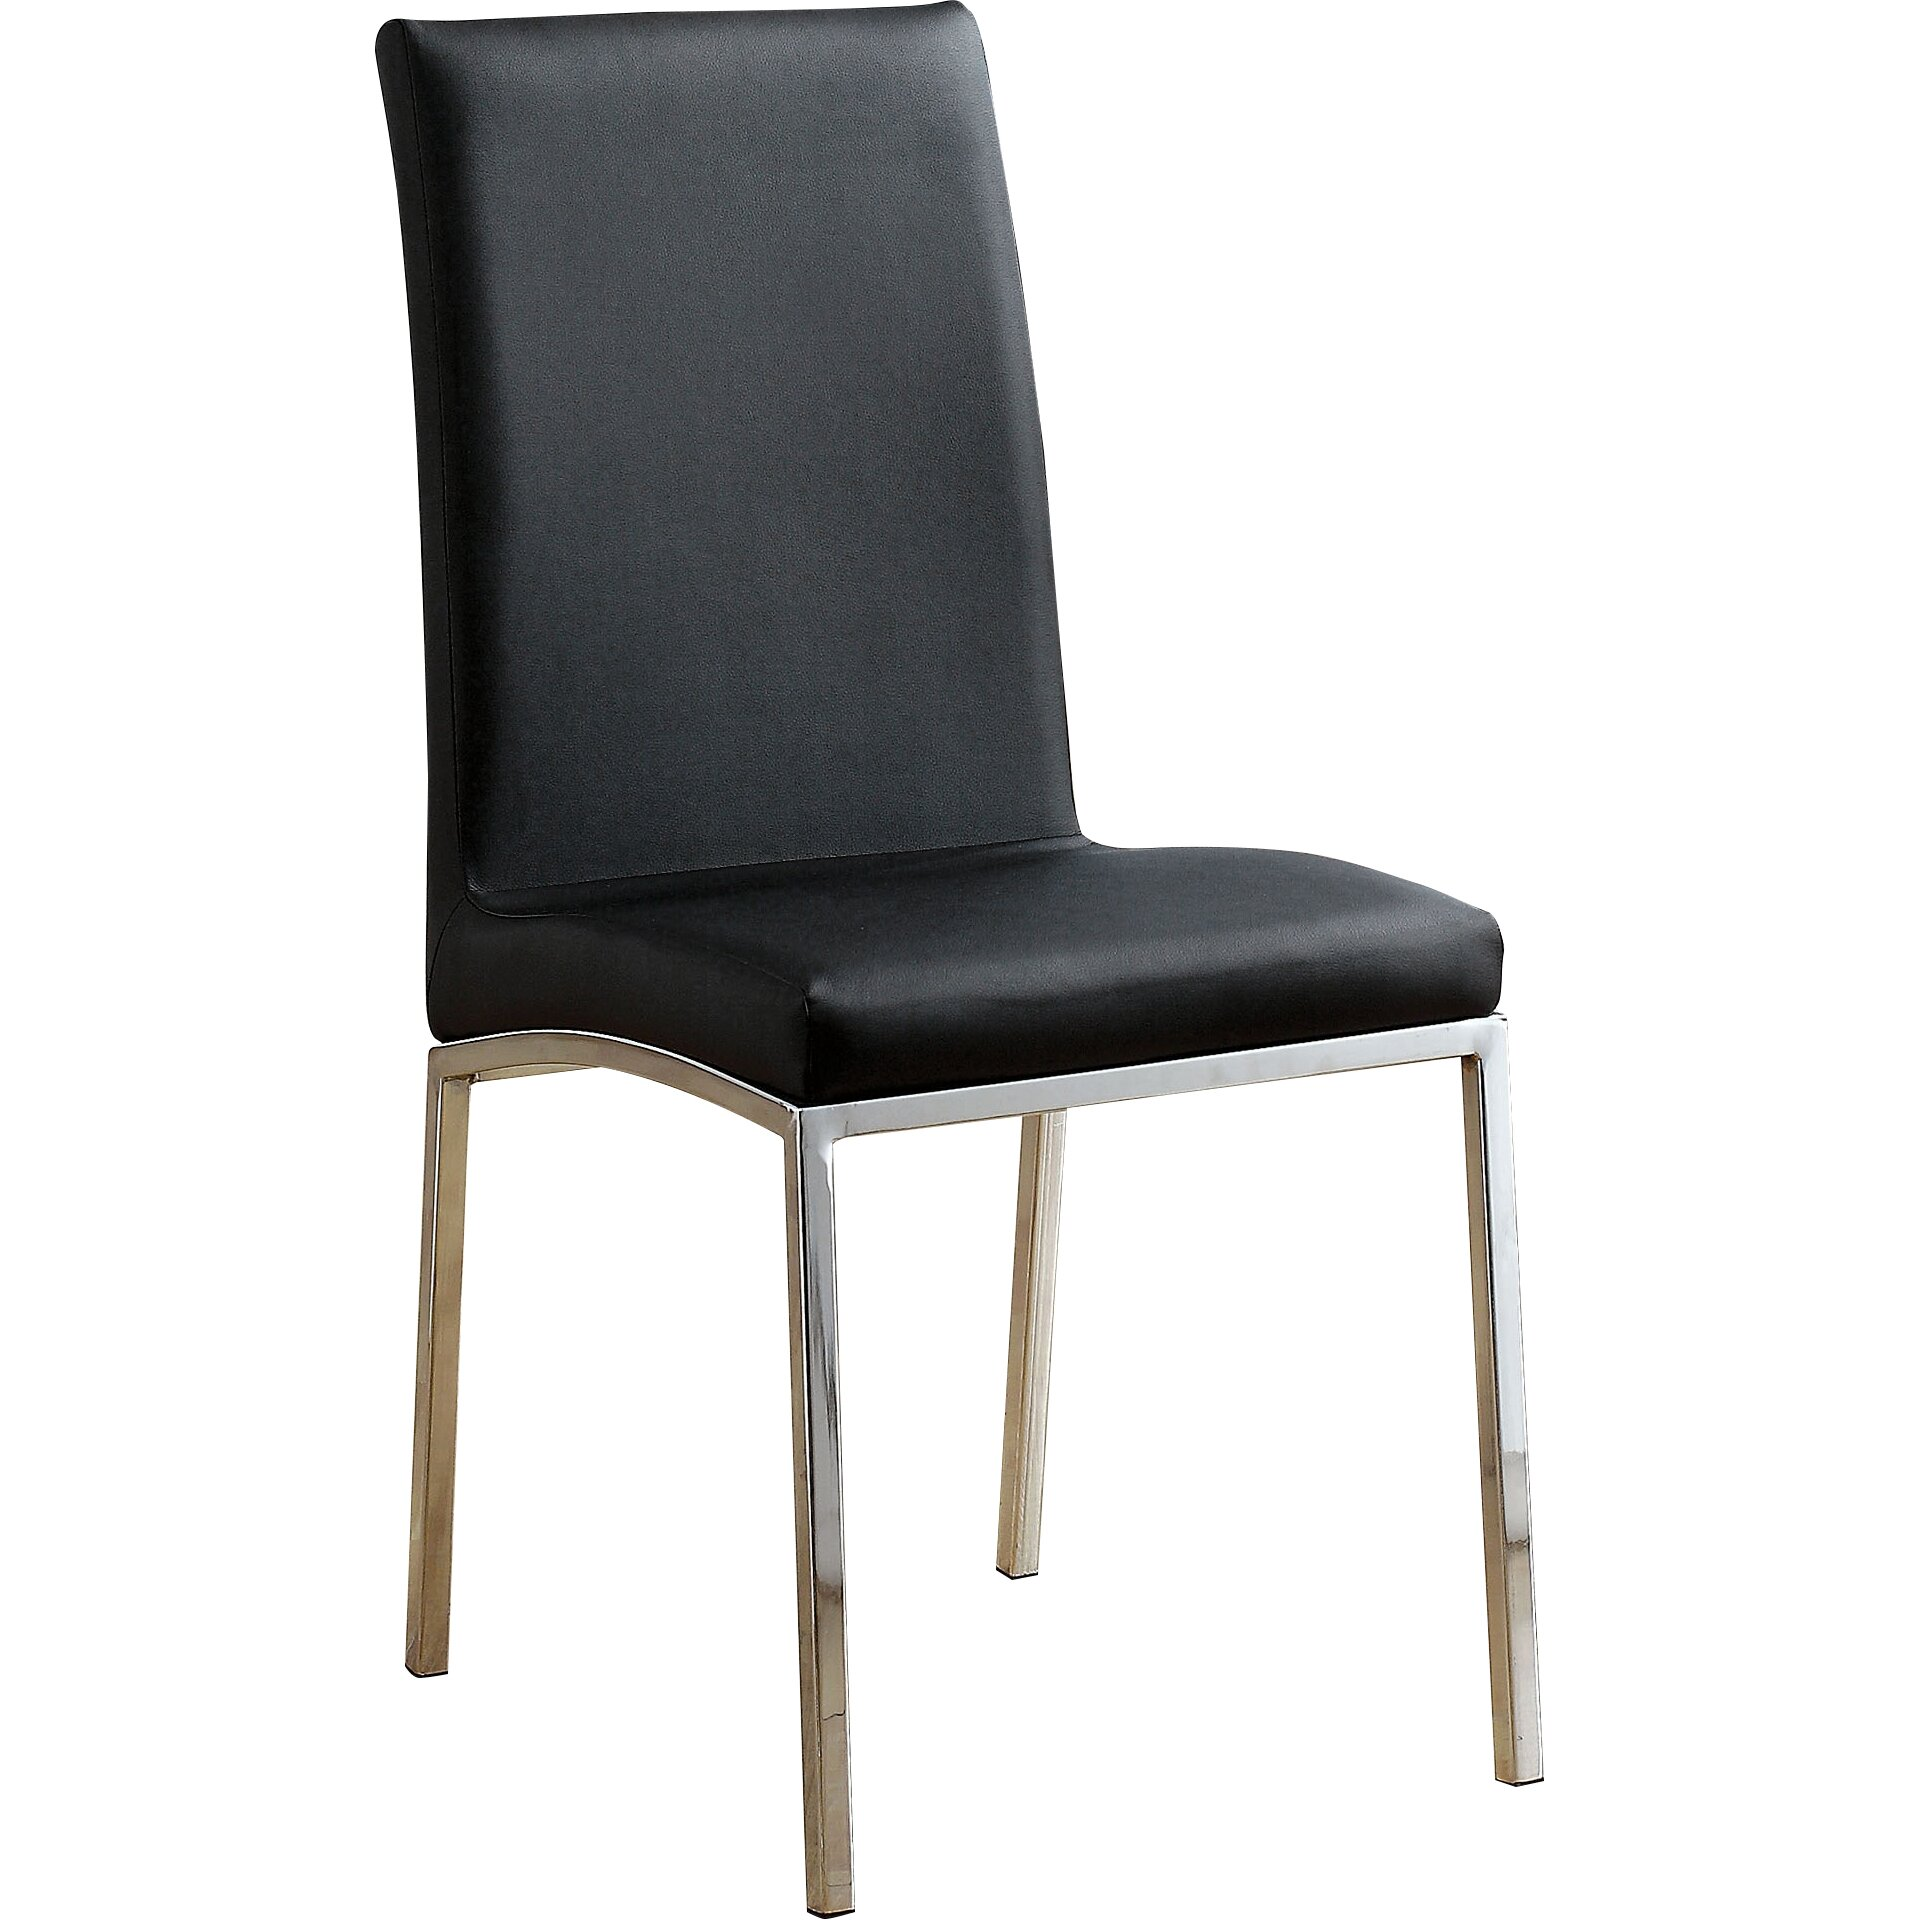 Hokku Designs Dean Parsons Chair amp Reviews Wayfair : Hokku Designs Dean Parsons Chair JEG 9447TD 3QL from www.wayfair.com size 1920 x 1920 jpeg 347kB